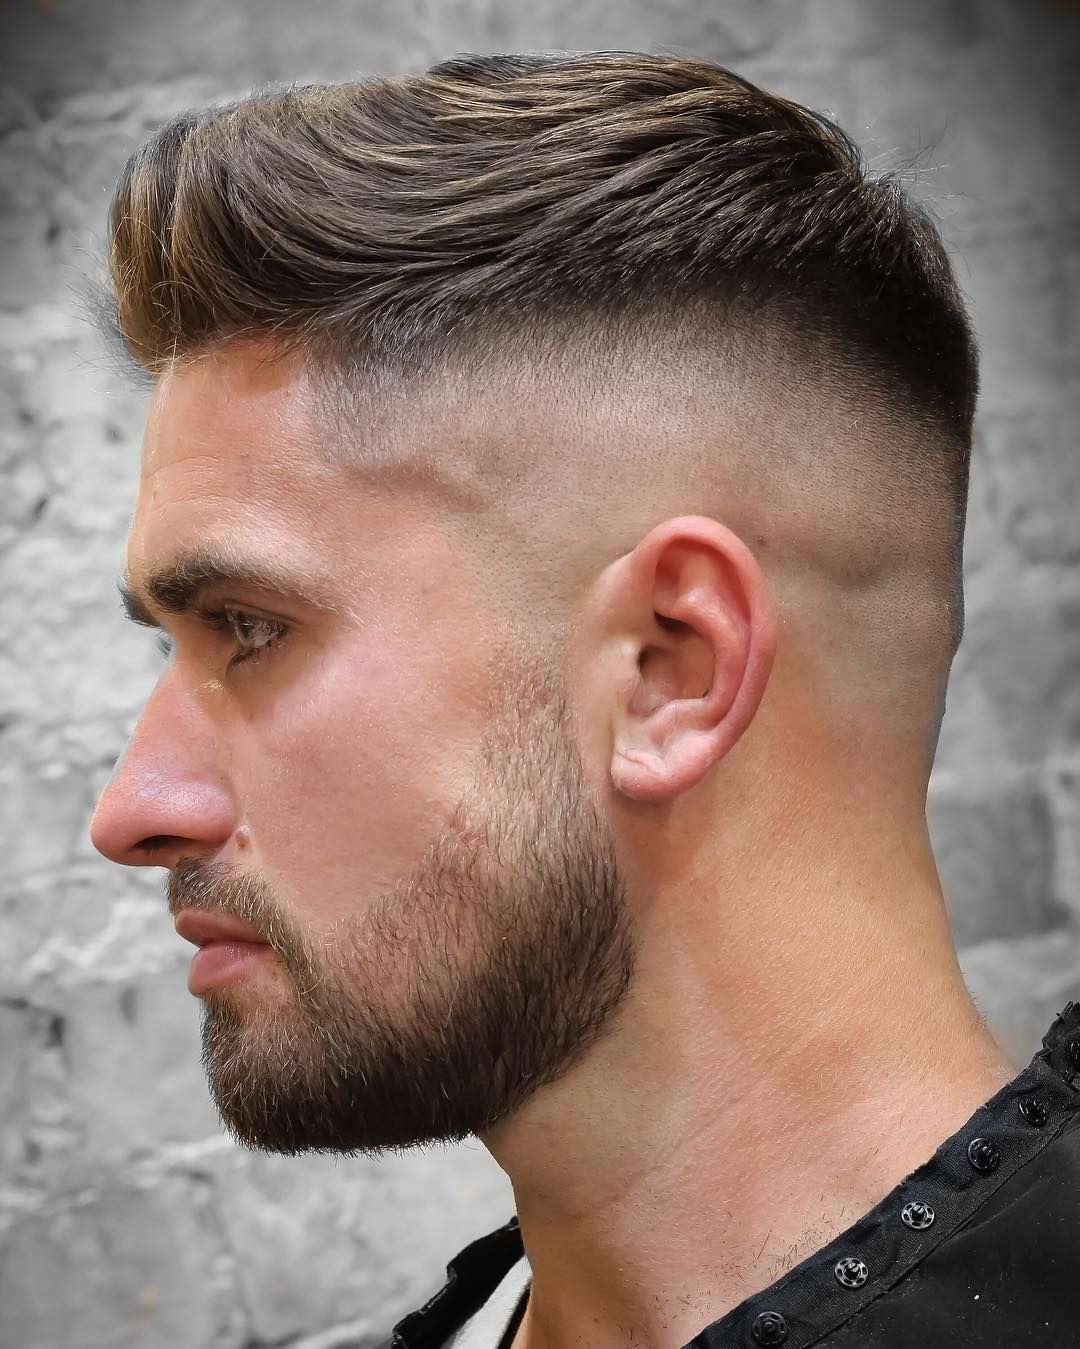 Haircuts of 2019. Mens hairstyles 2019